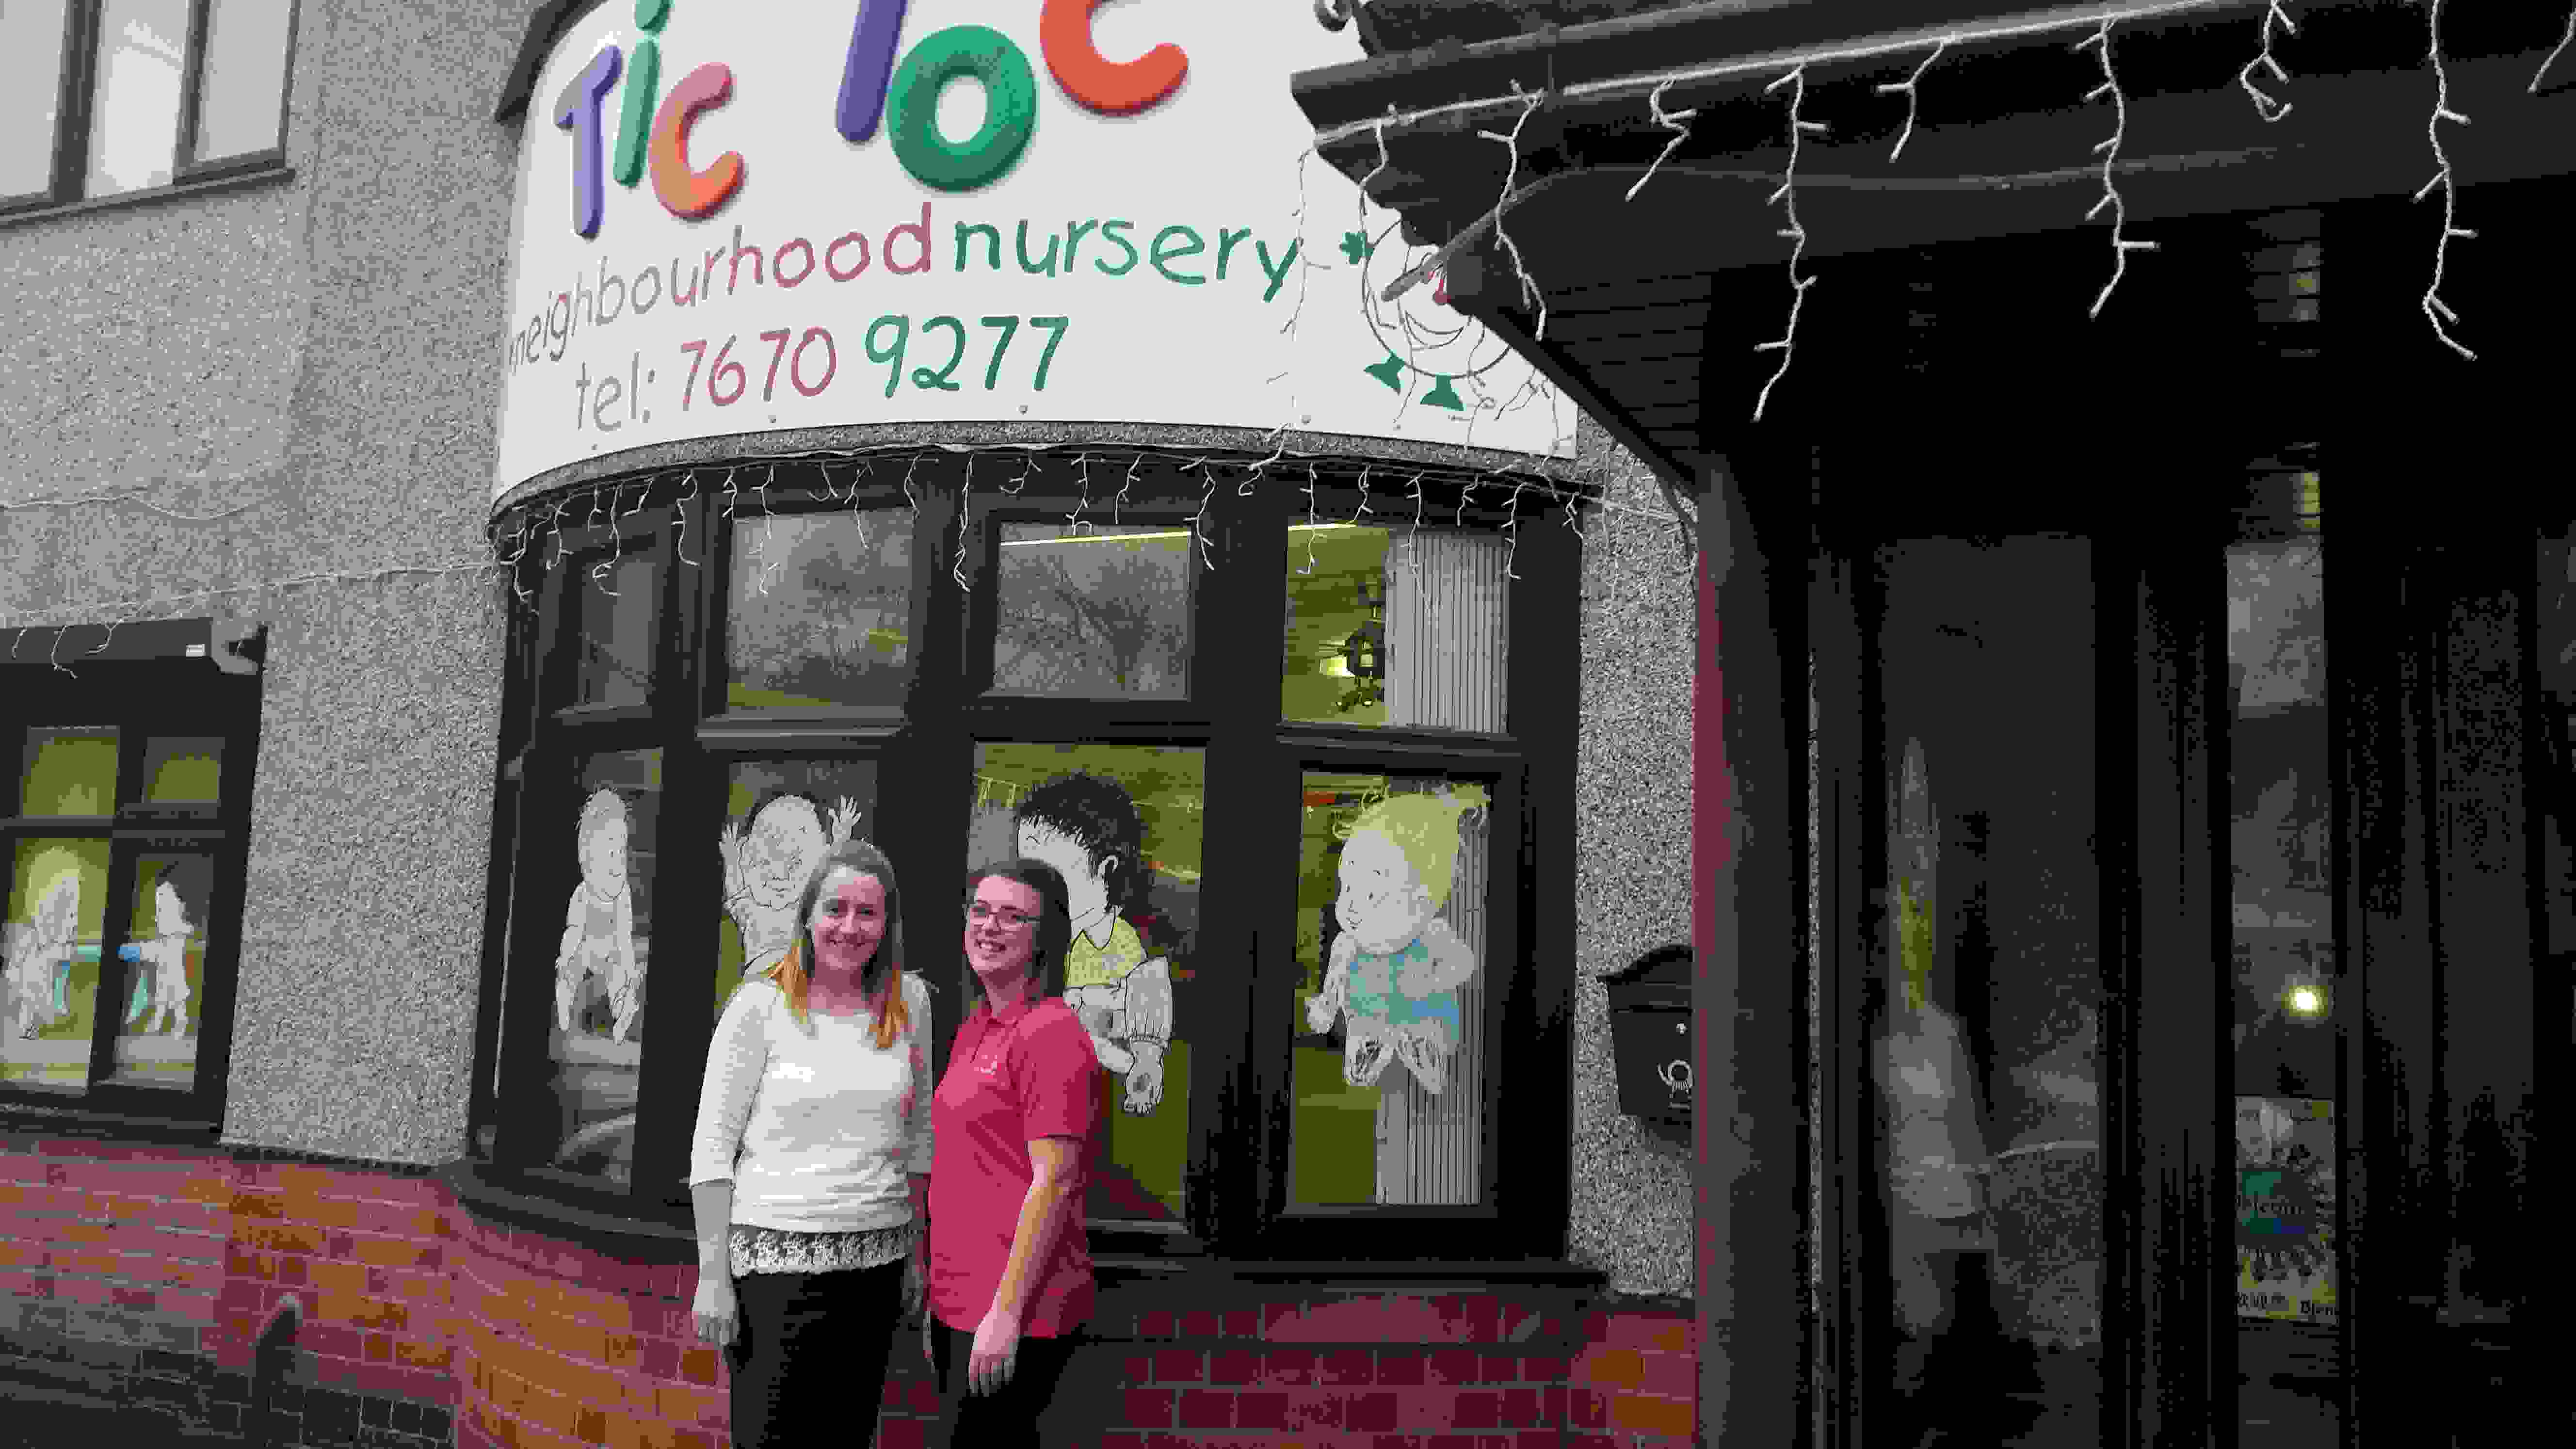 Related - Congratulations to Tic Toc Nursery